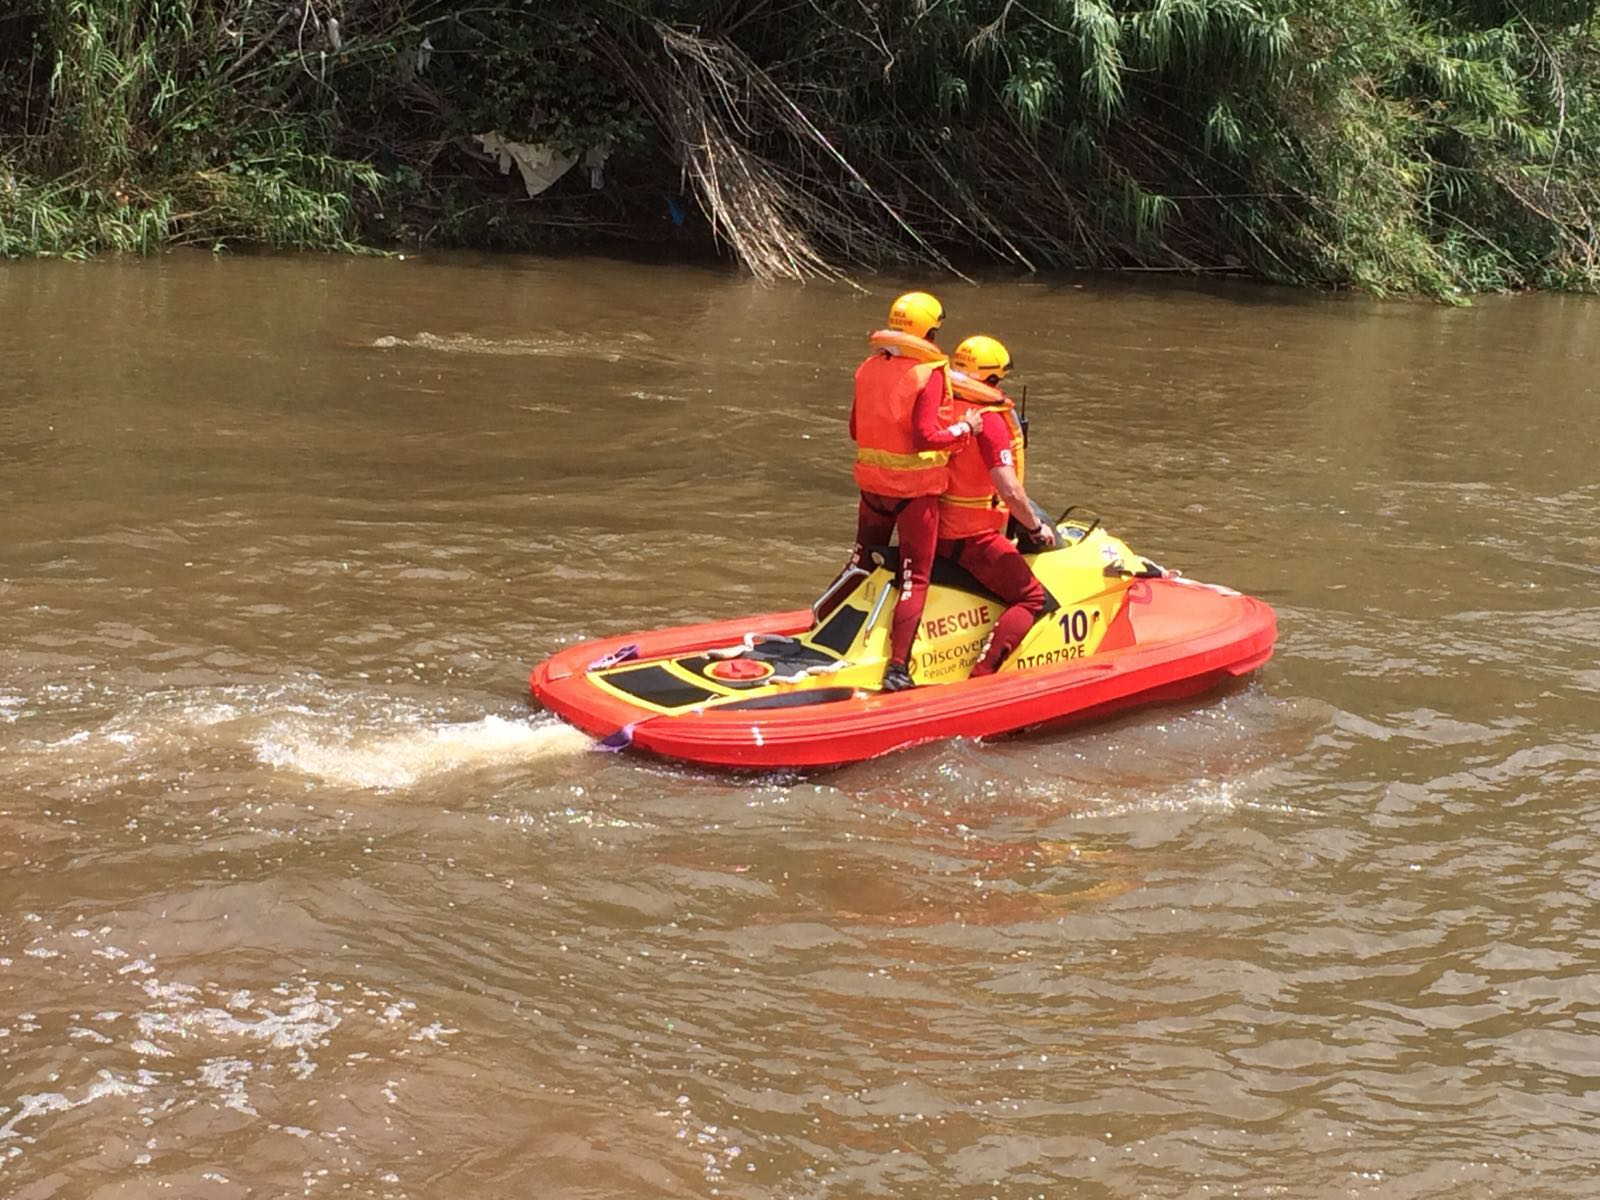 NSRI volunteers from Station 25, Victoria Lake search the Jukskei river.